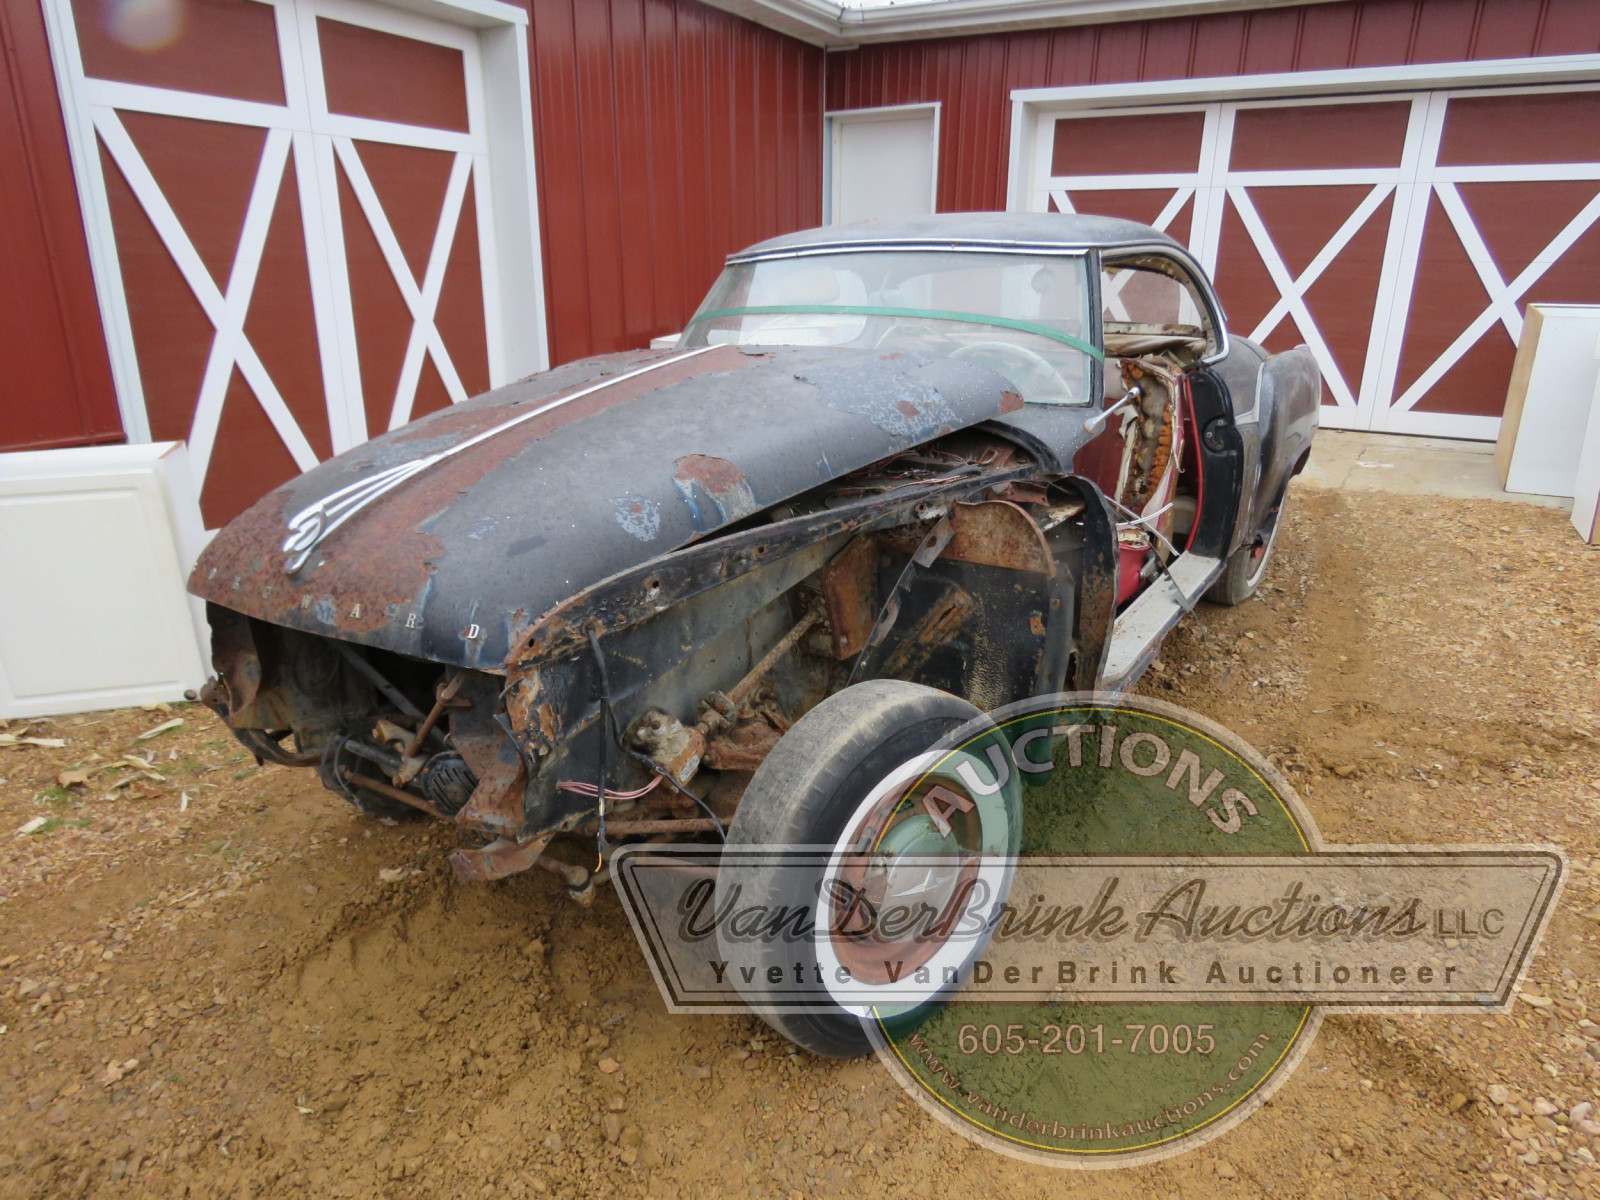 Borgward Coupe for project or parts - Image 3